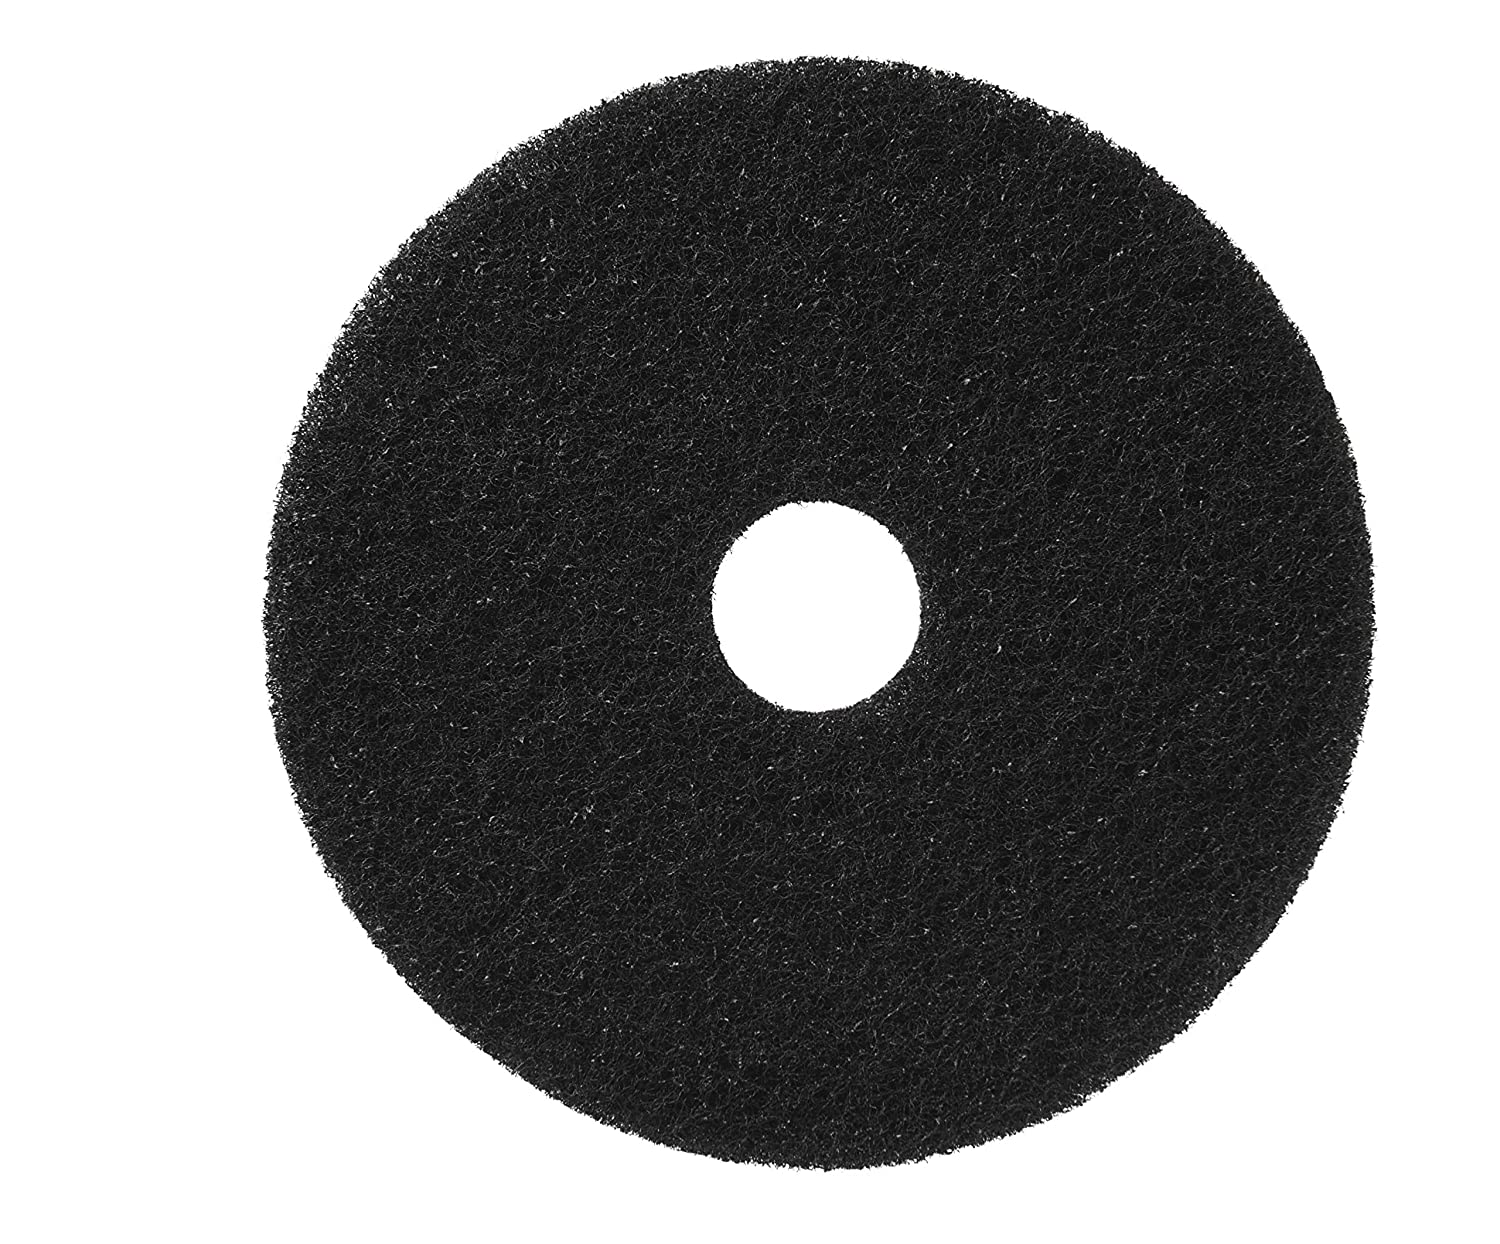 Americo Manufacturing 40011432 Standard Black Stripping Floor Pads Rectangle (5 Pack), 14' x 32'